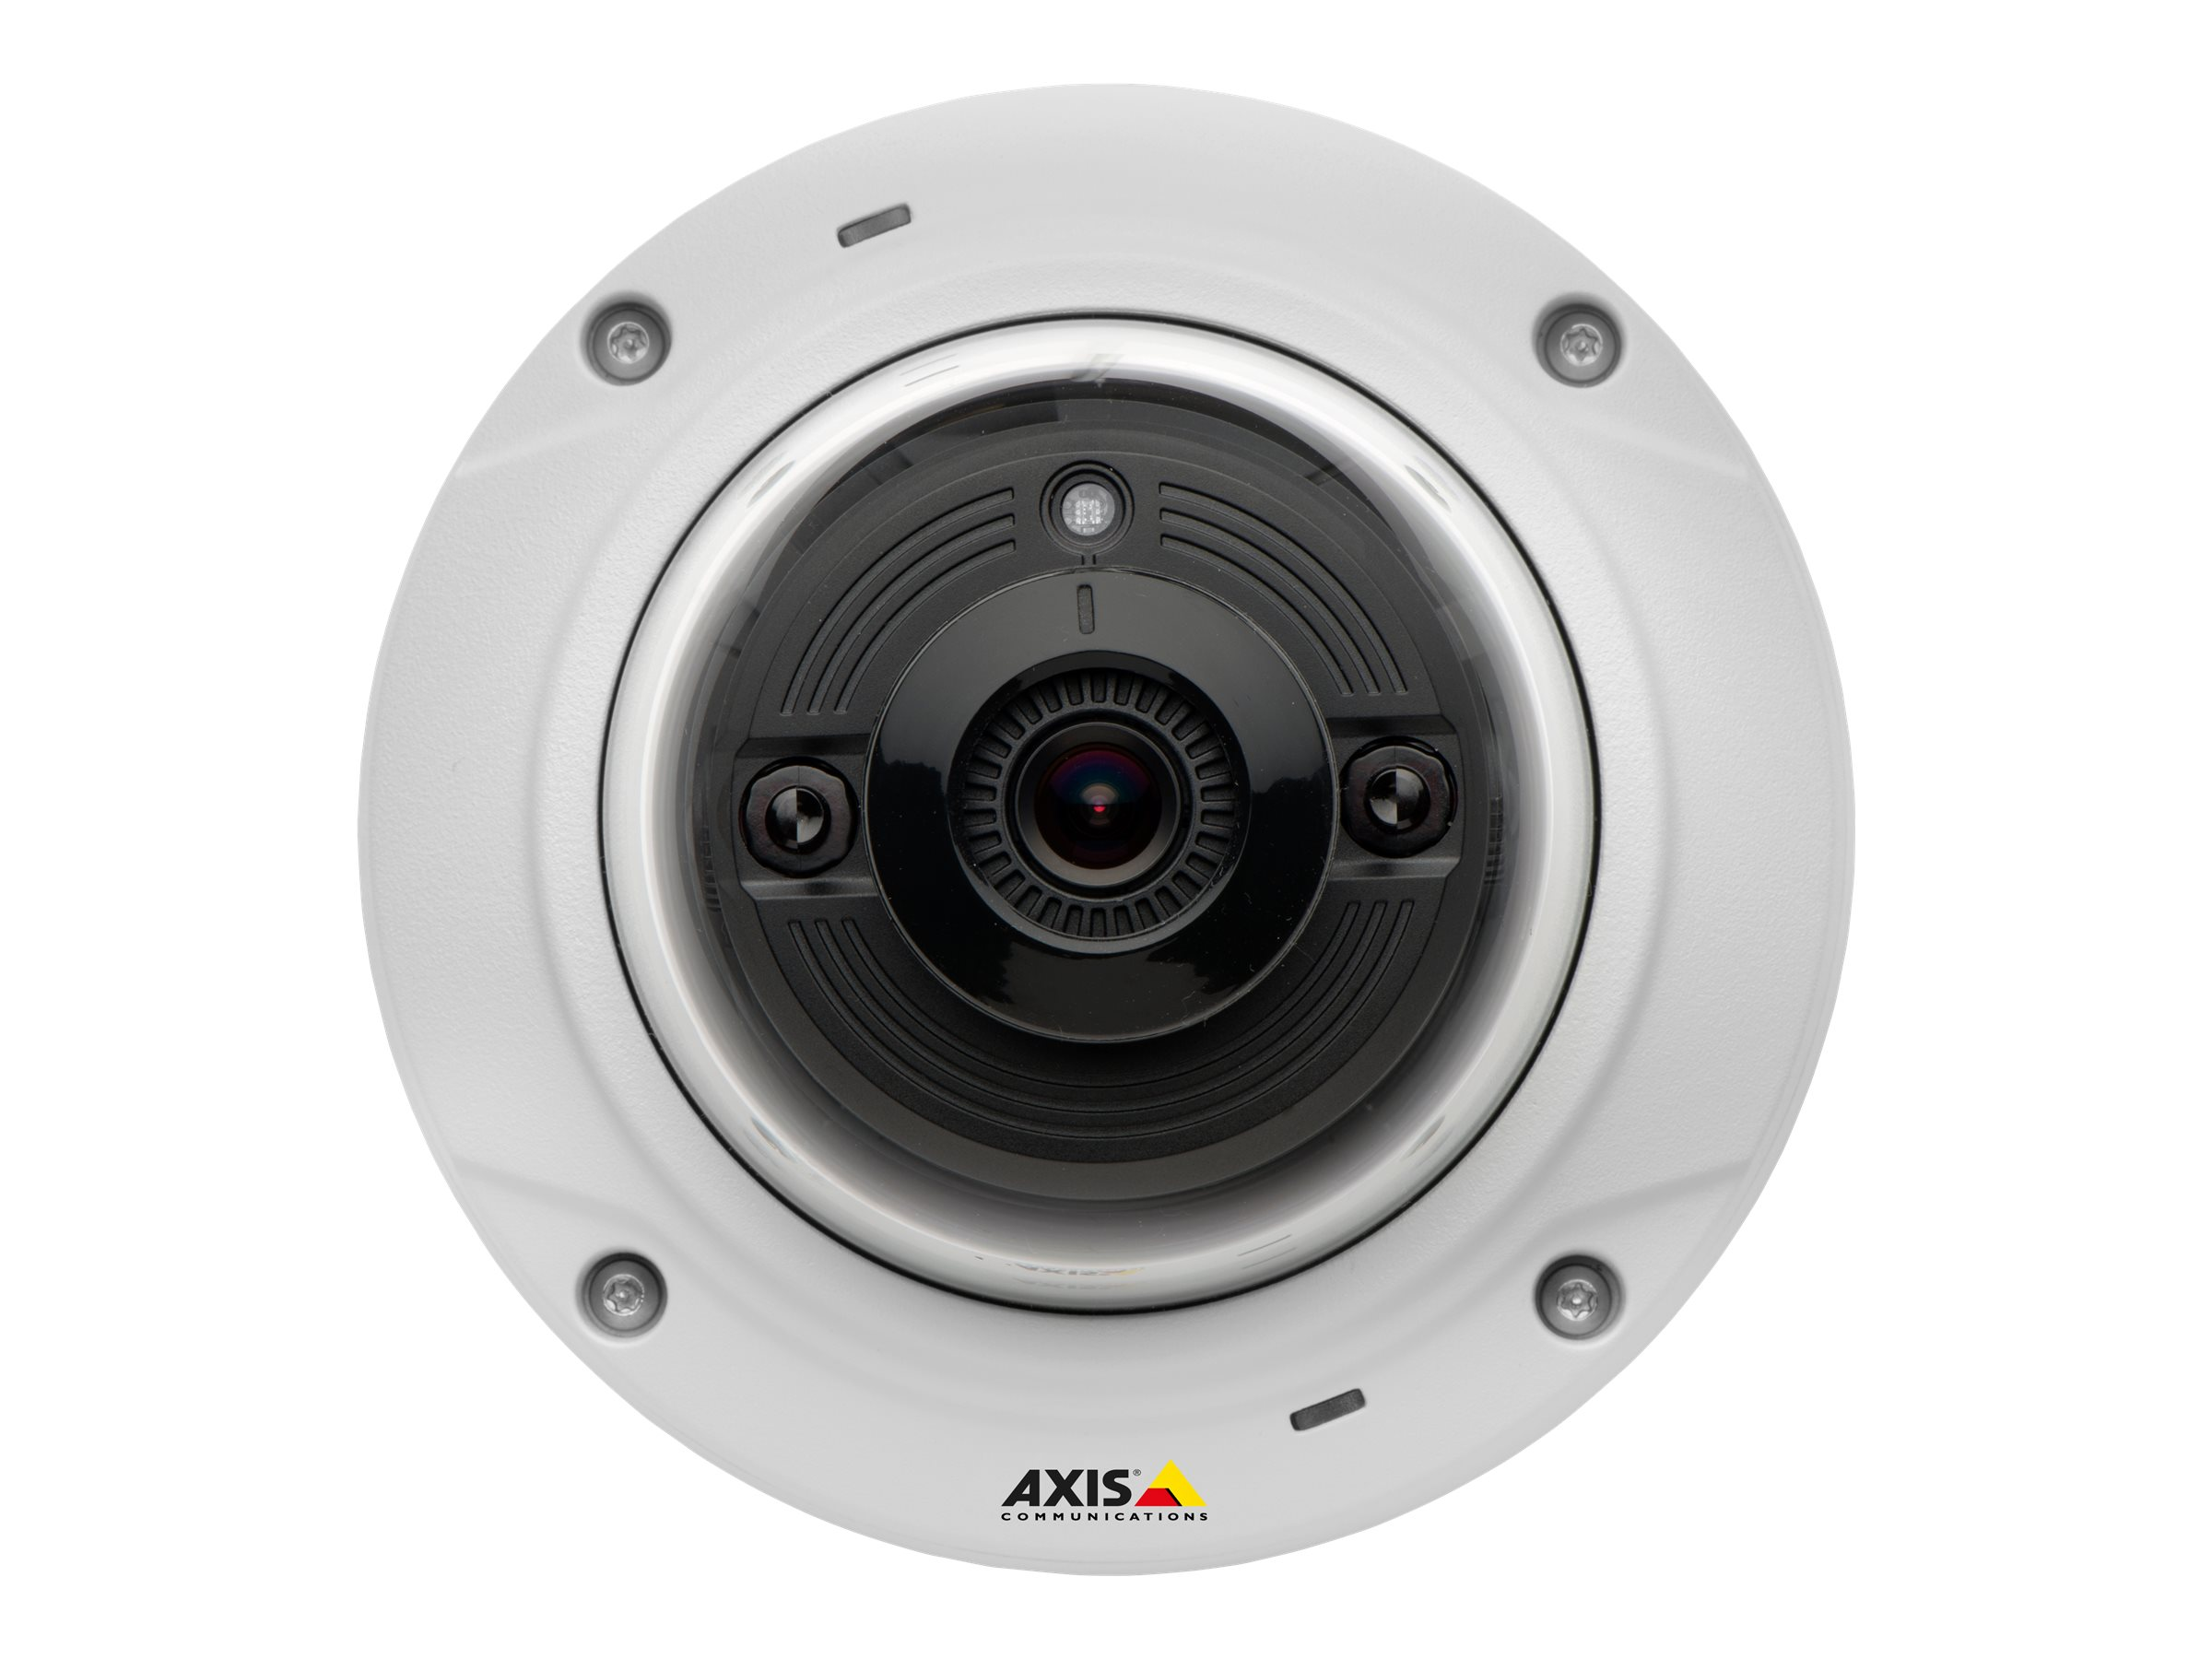 Axis M3024-LVE Outdoor Day Night Network Camera, 0535-001, 16039532, Cameras - Security